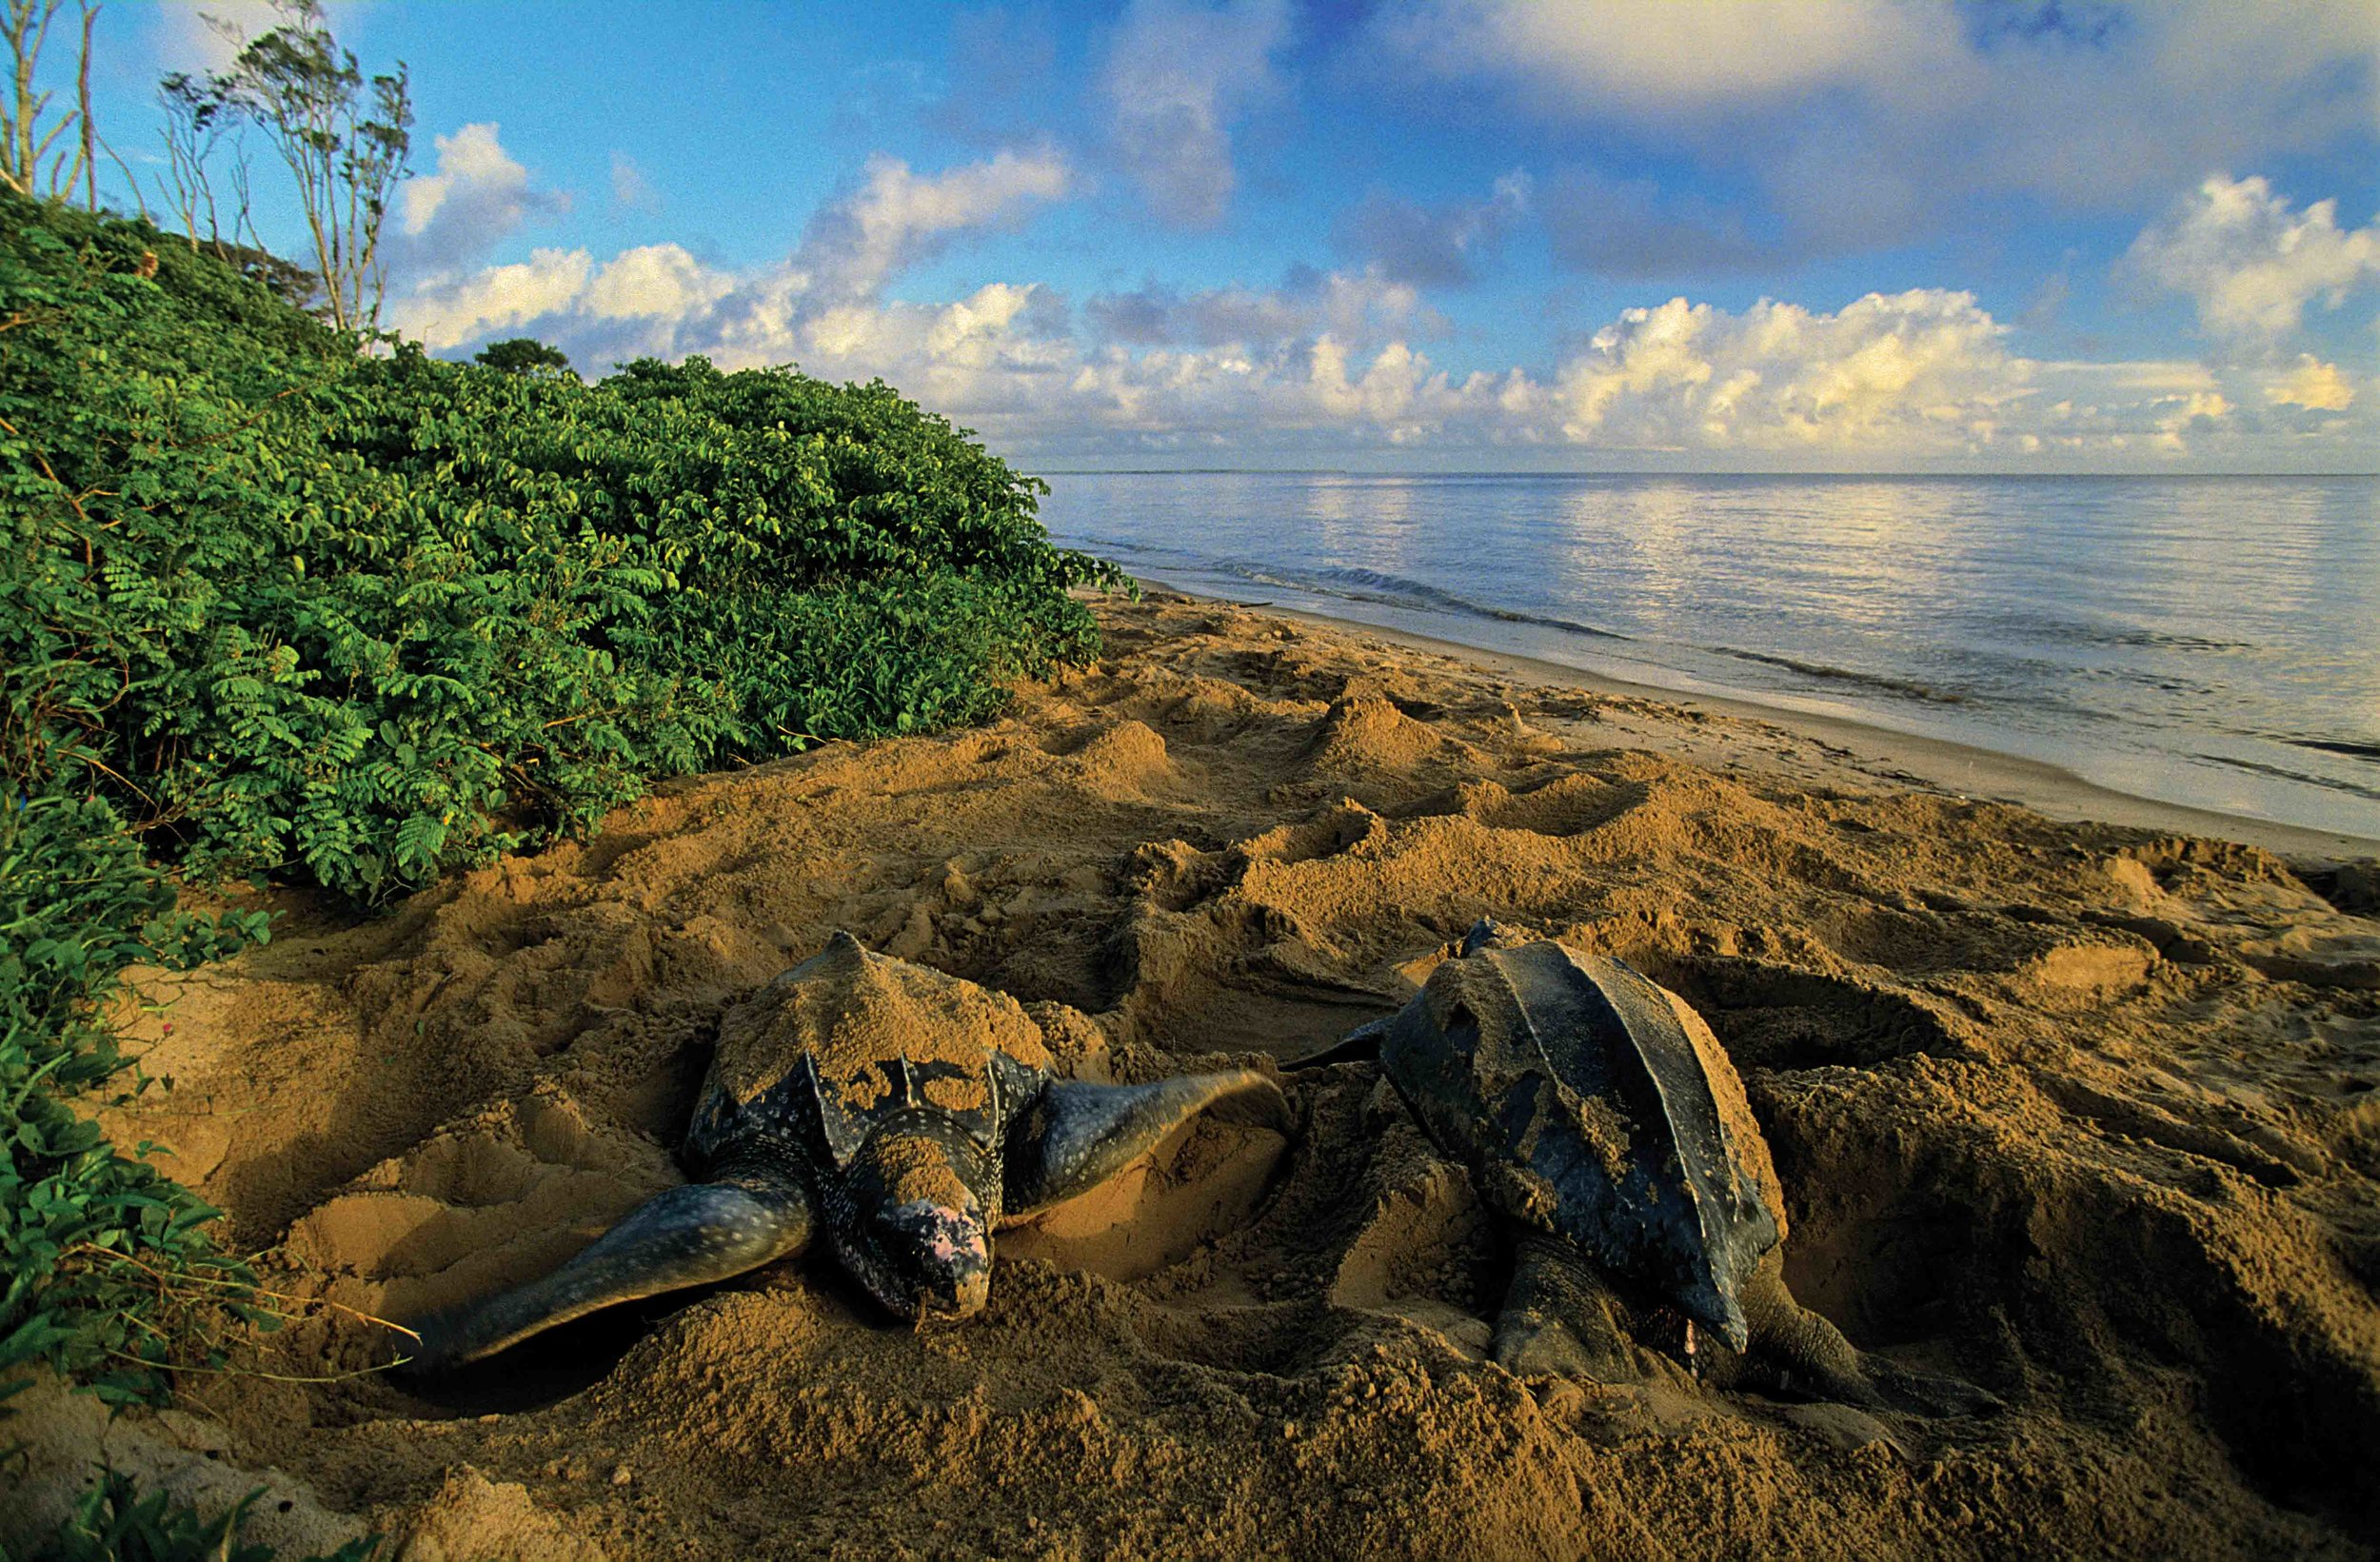 Two leatherbacks camouflage their nests on Les Hattes beach, in front of the village of Yalimapo in French Guiana. © Olivier Grünewald